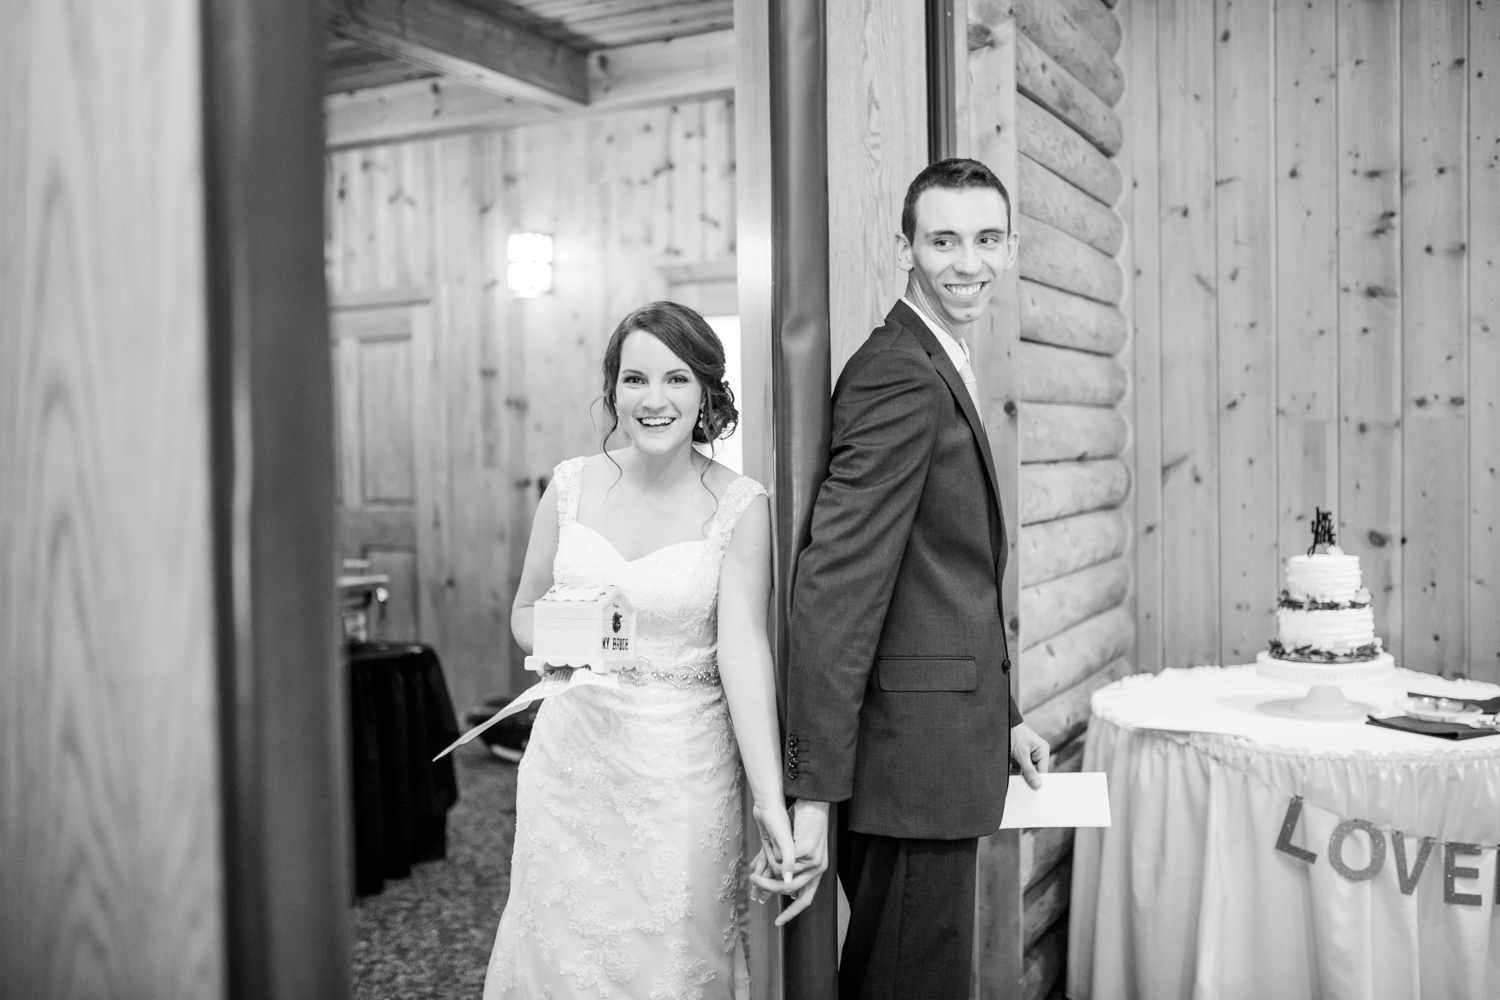 mayernick center avonworth community park wedding photographer, mayernick center avonworth community park wedding photos, pittsburgh wedding photographer, north hills wedding photographer